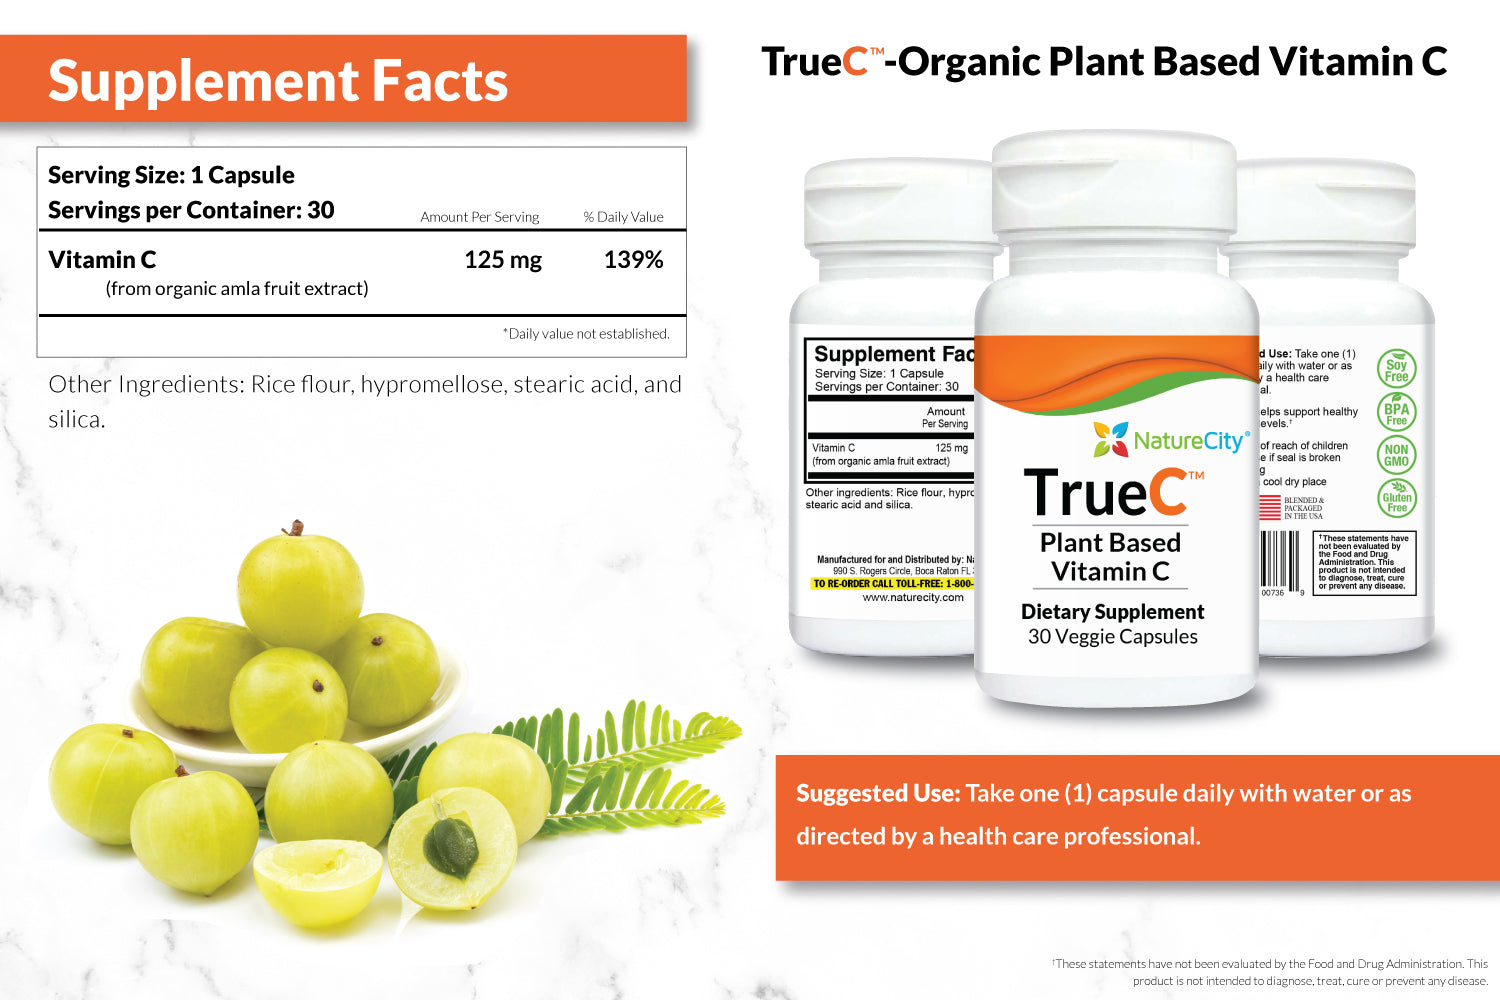 TrueC Supplement Facts and Suggested Use